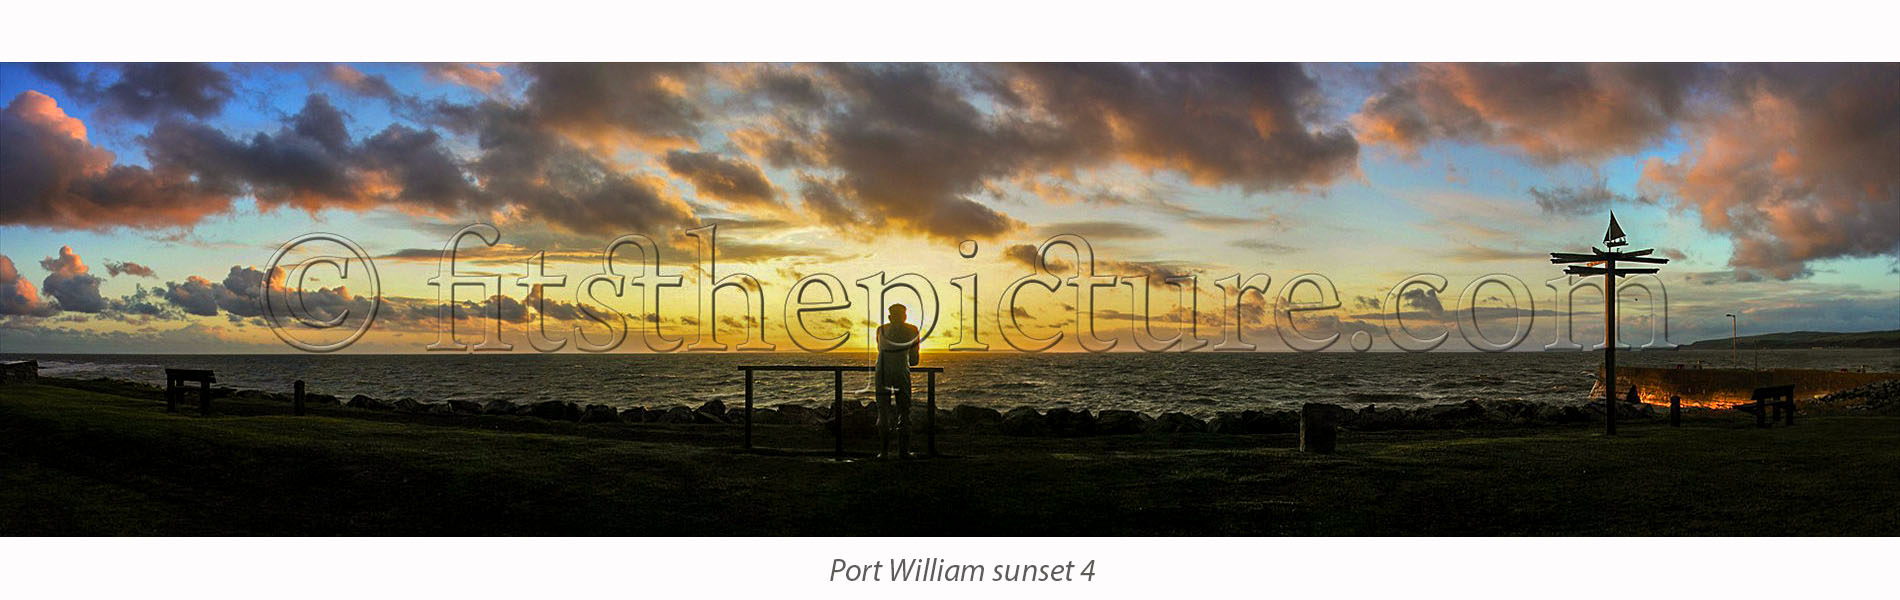 port_william_sunset_4.jpg